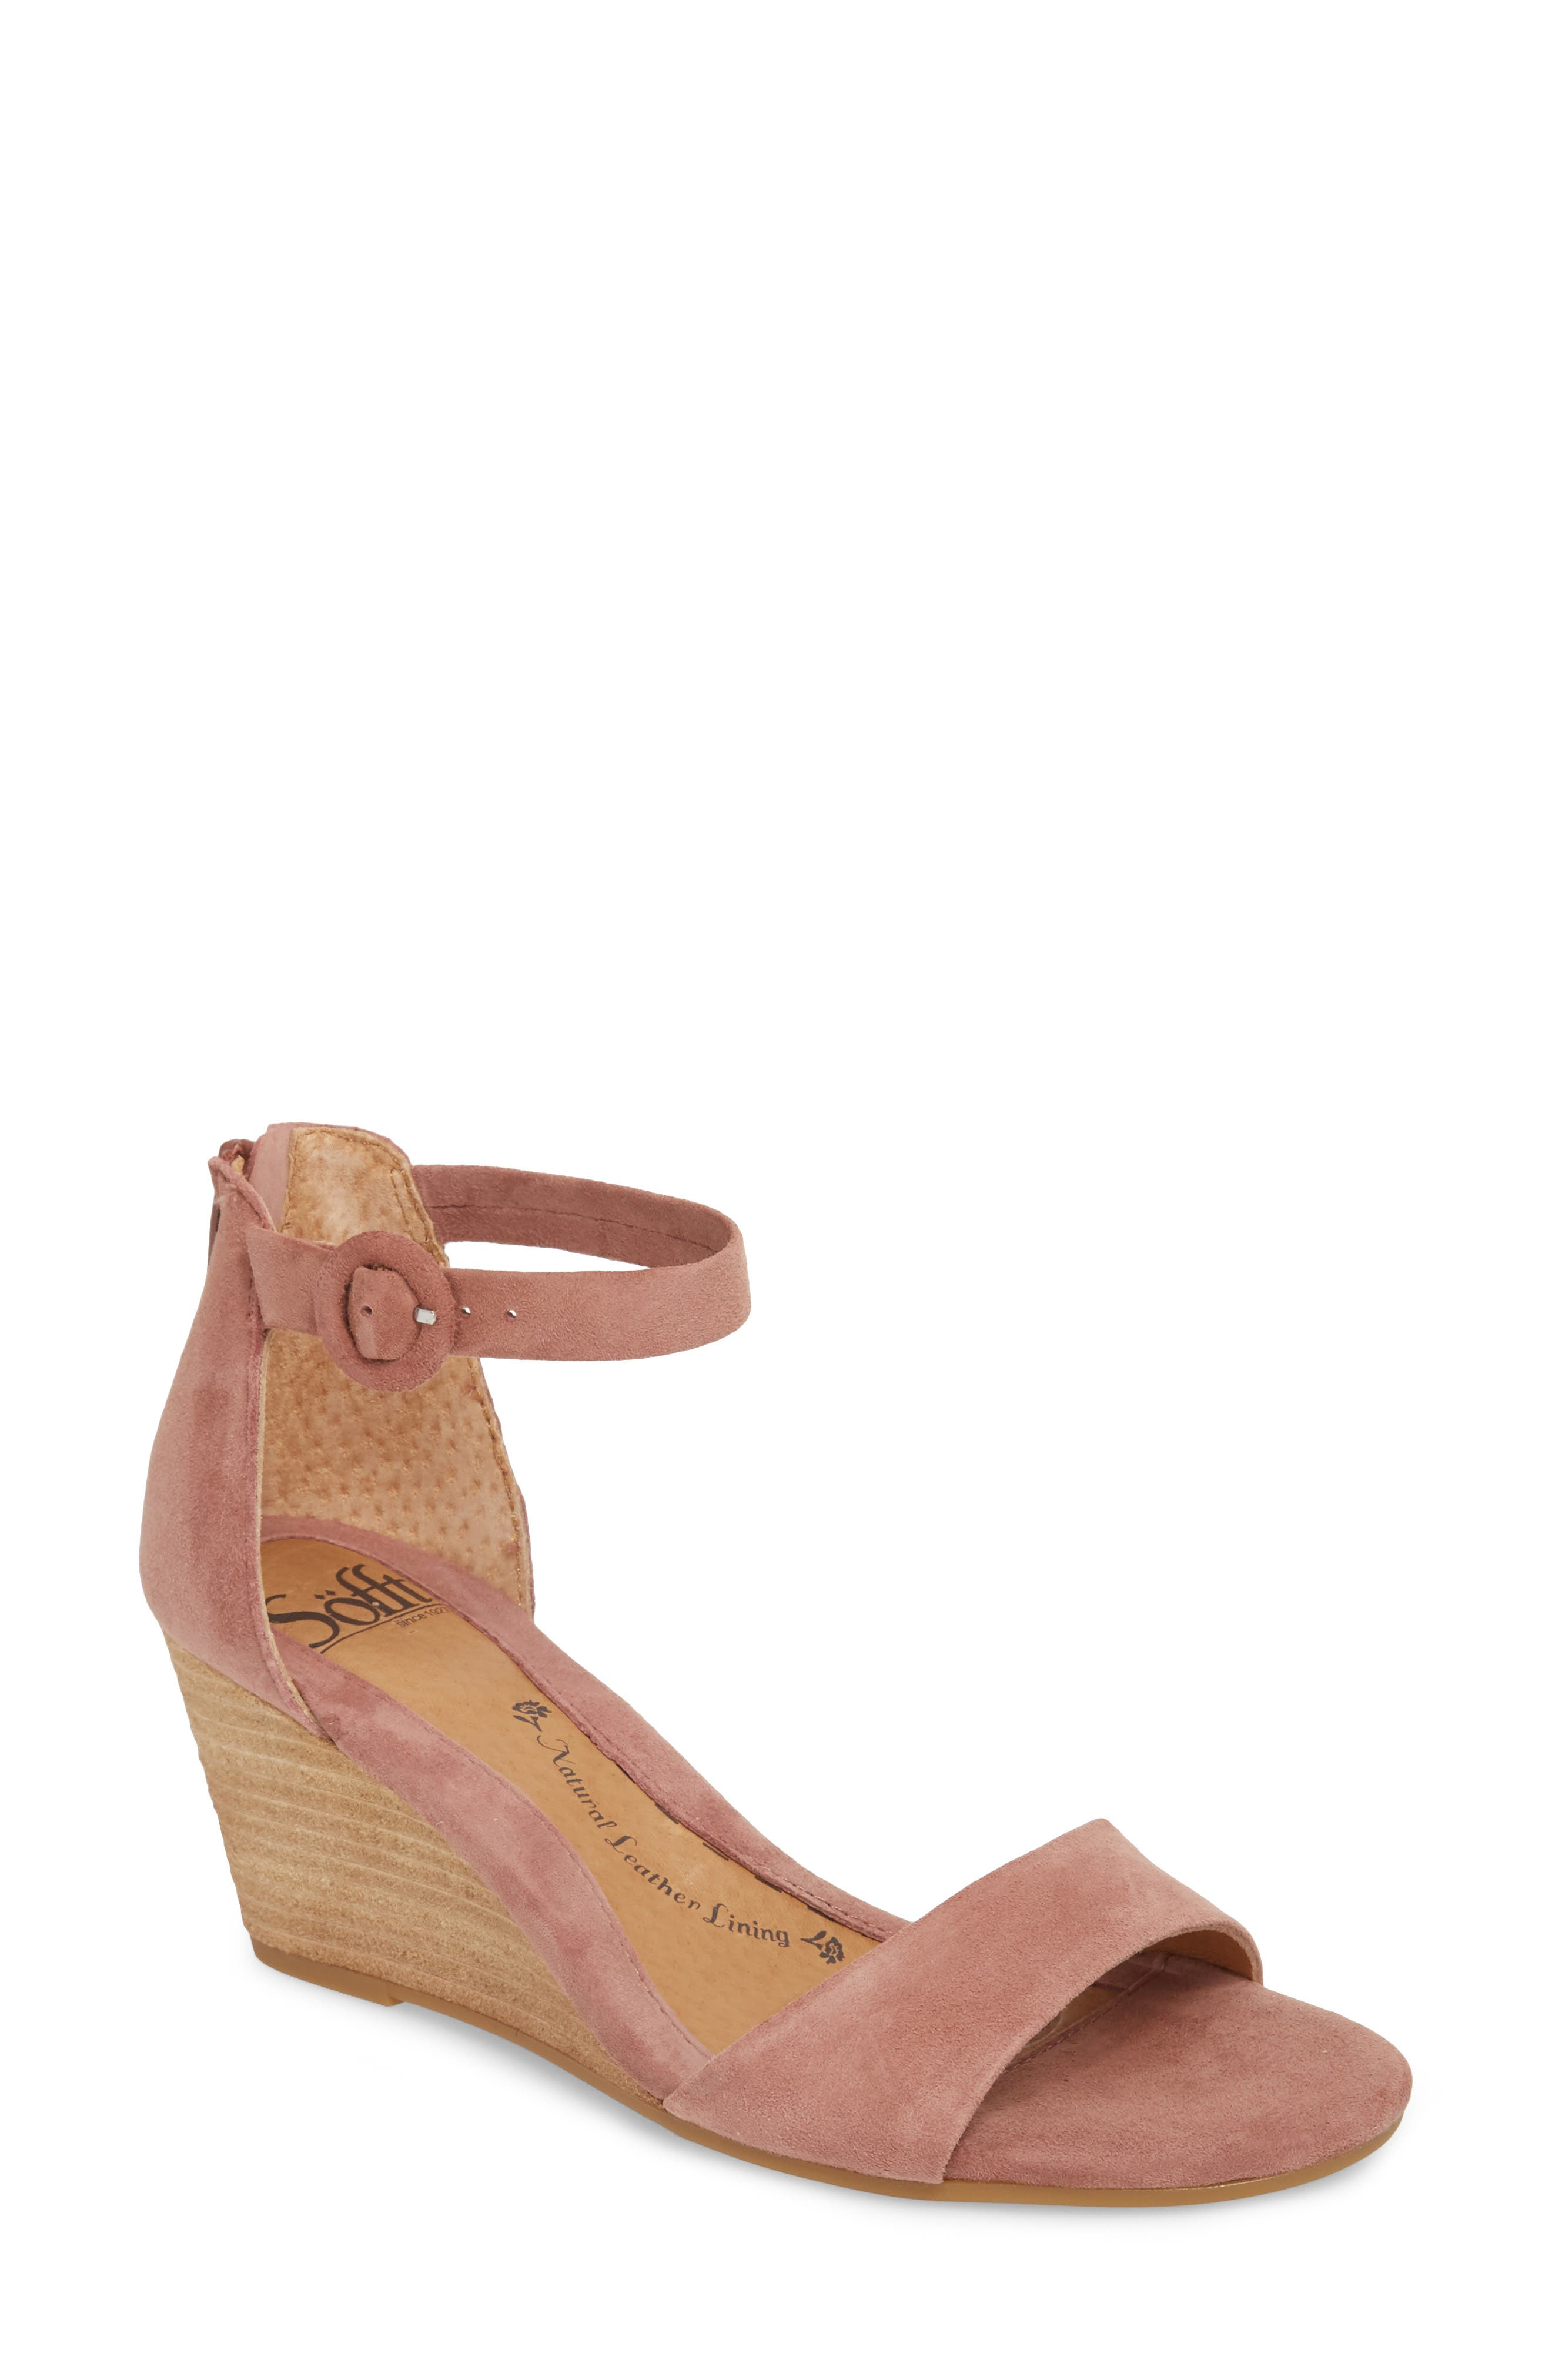 Marla Wedge Sandal,                         Main,                         color, MULBERRY SUEDE